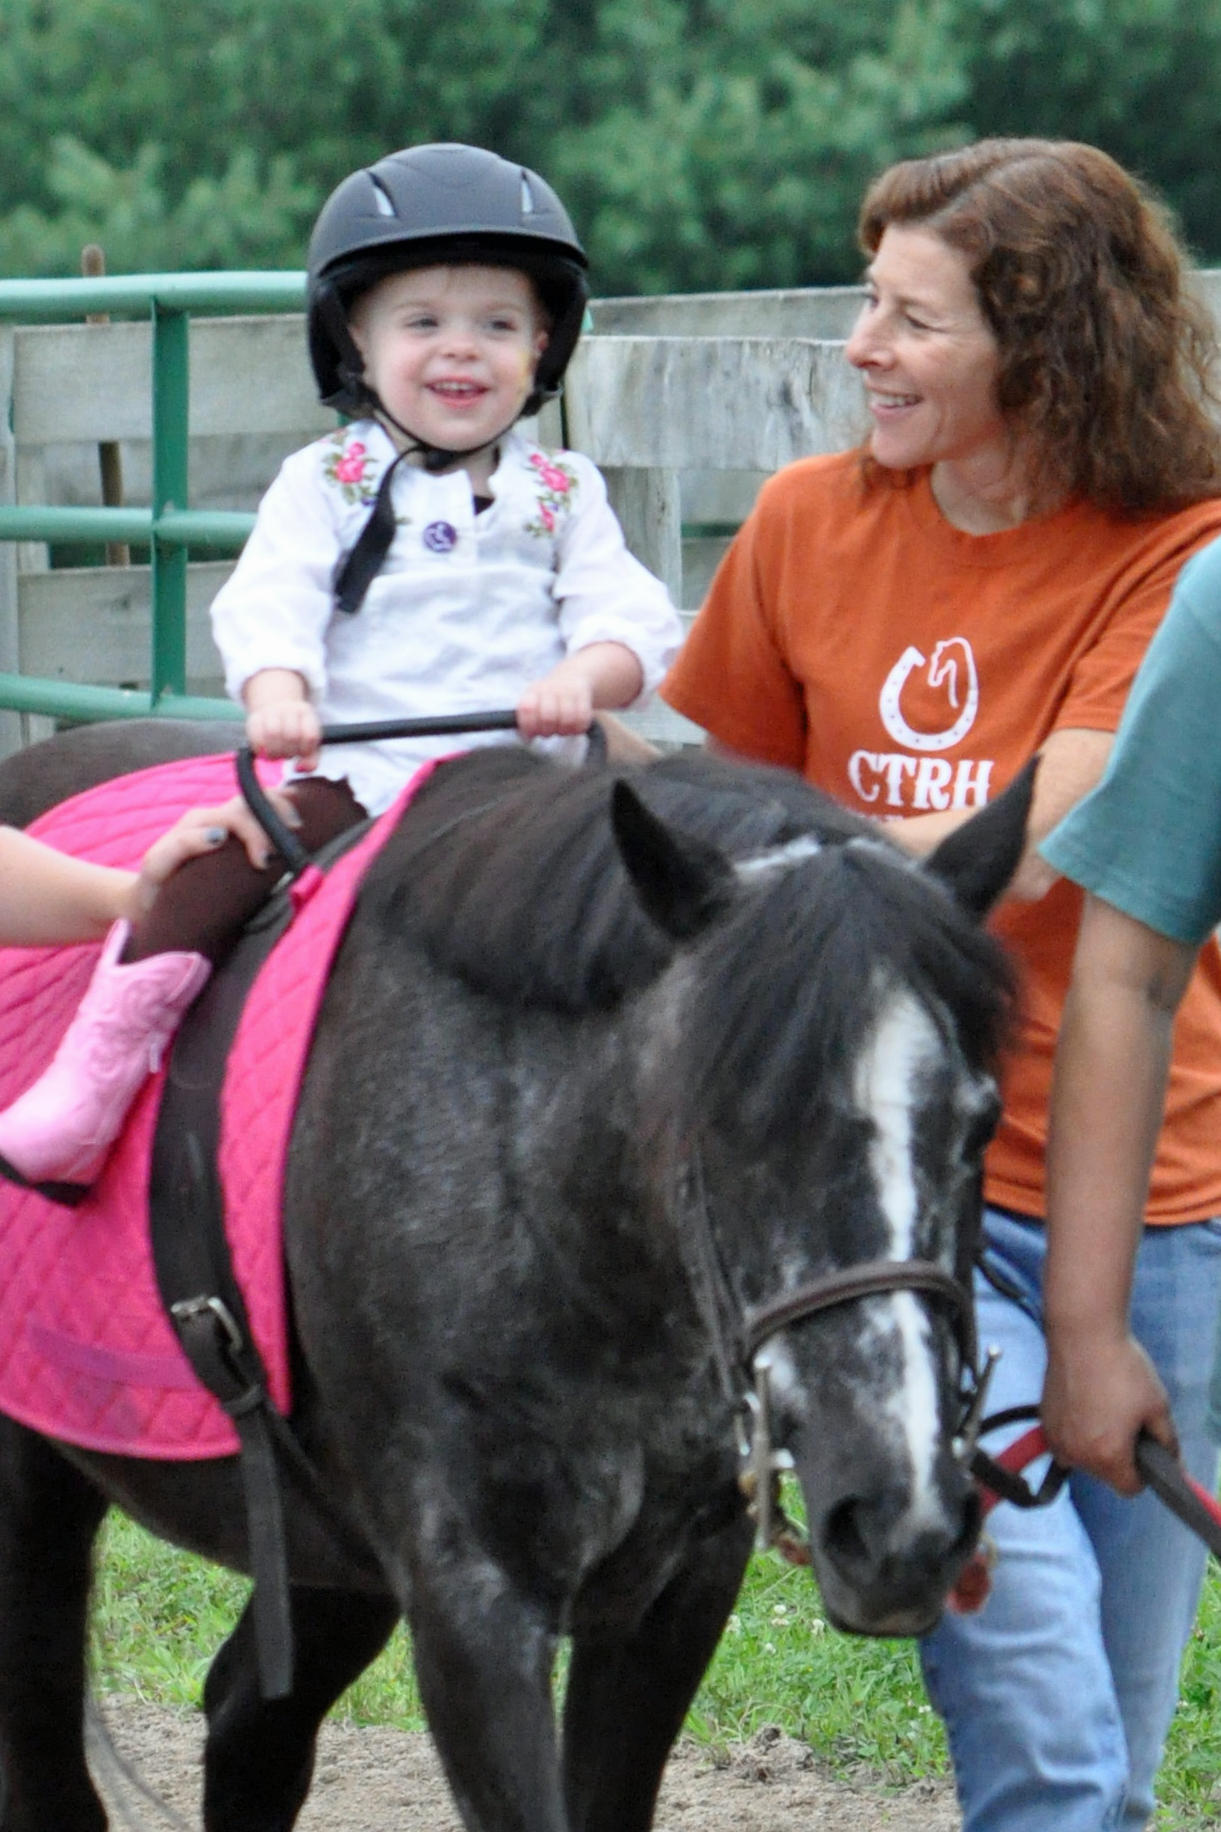 The Benefits Of Equine Therapy For Those Who Are Disabled Or Have